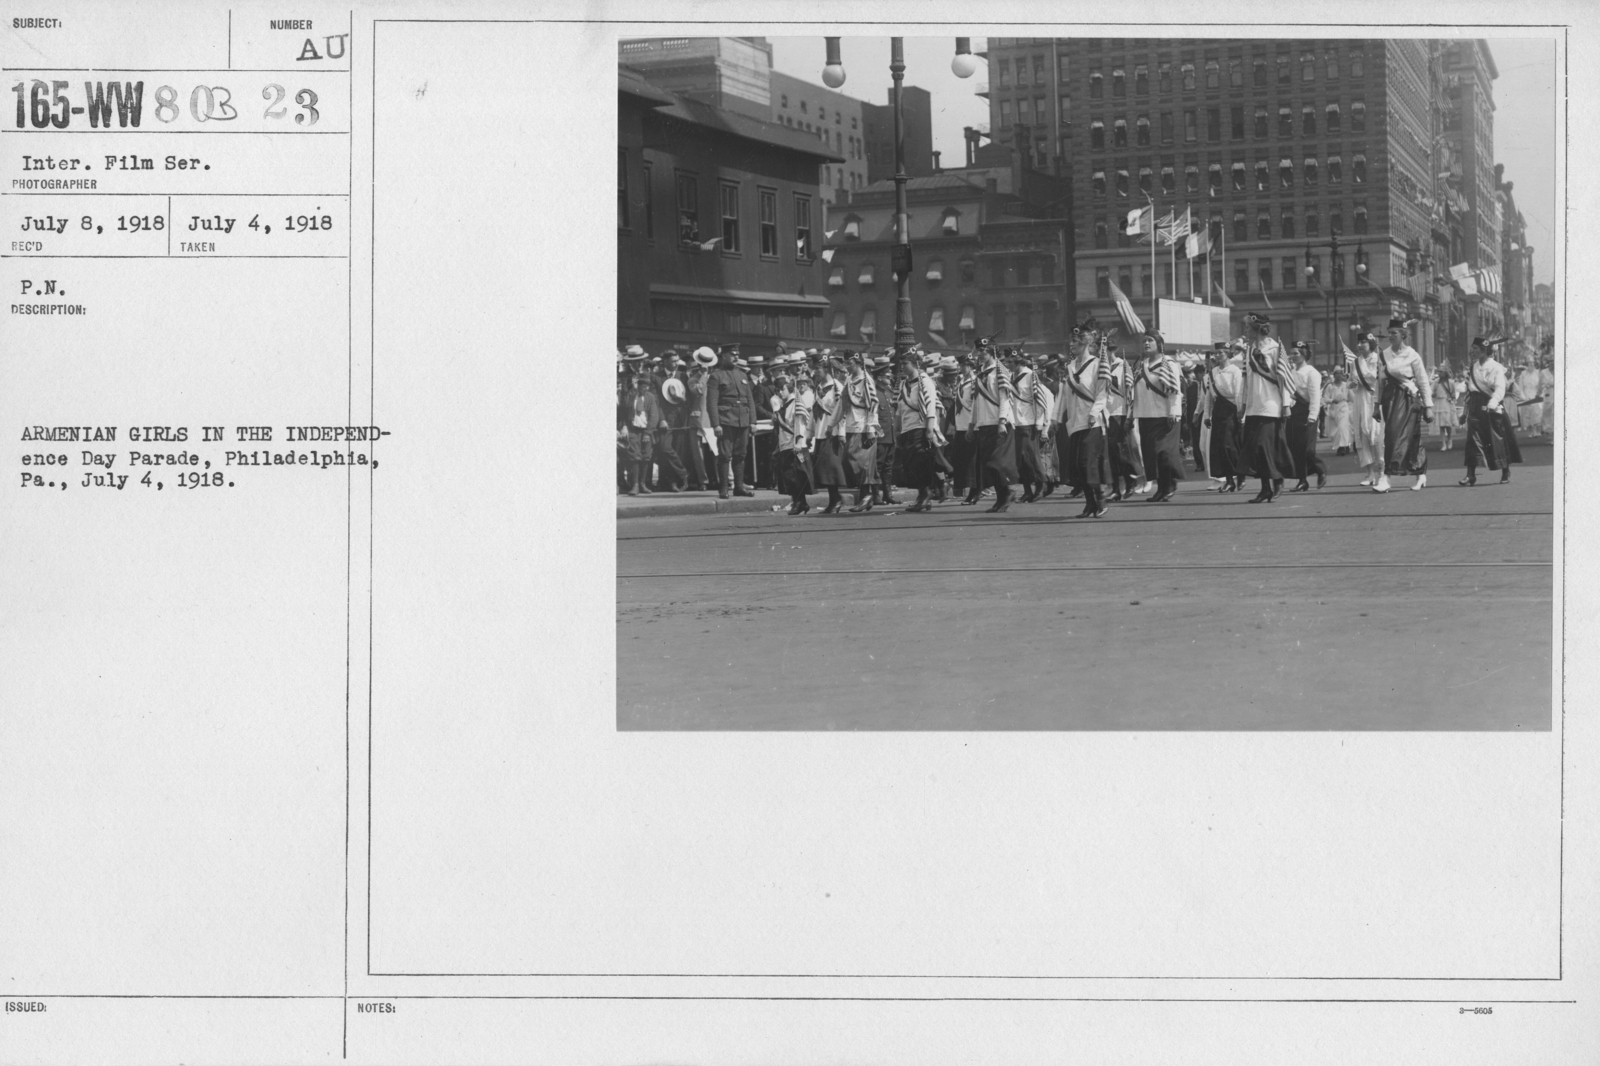 Ceremonies - Independence Day Parades (All States) - Aermenian girls in the Independence Day Parade, Philadelphia, PA., July 4, 1918